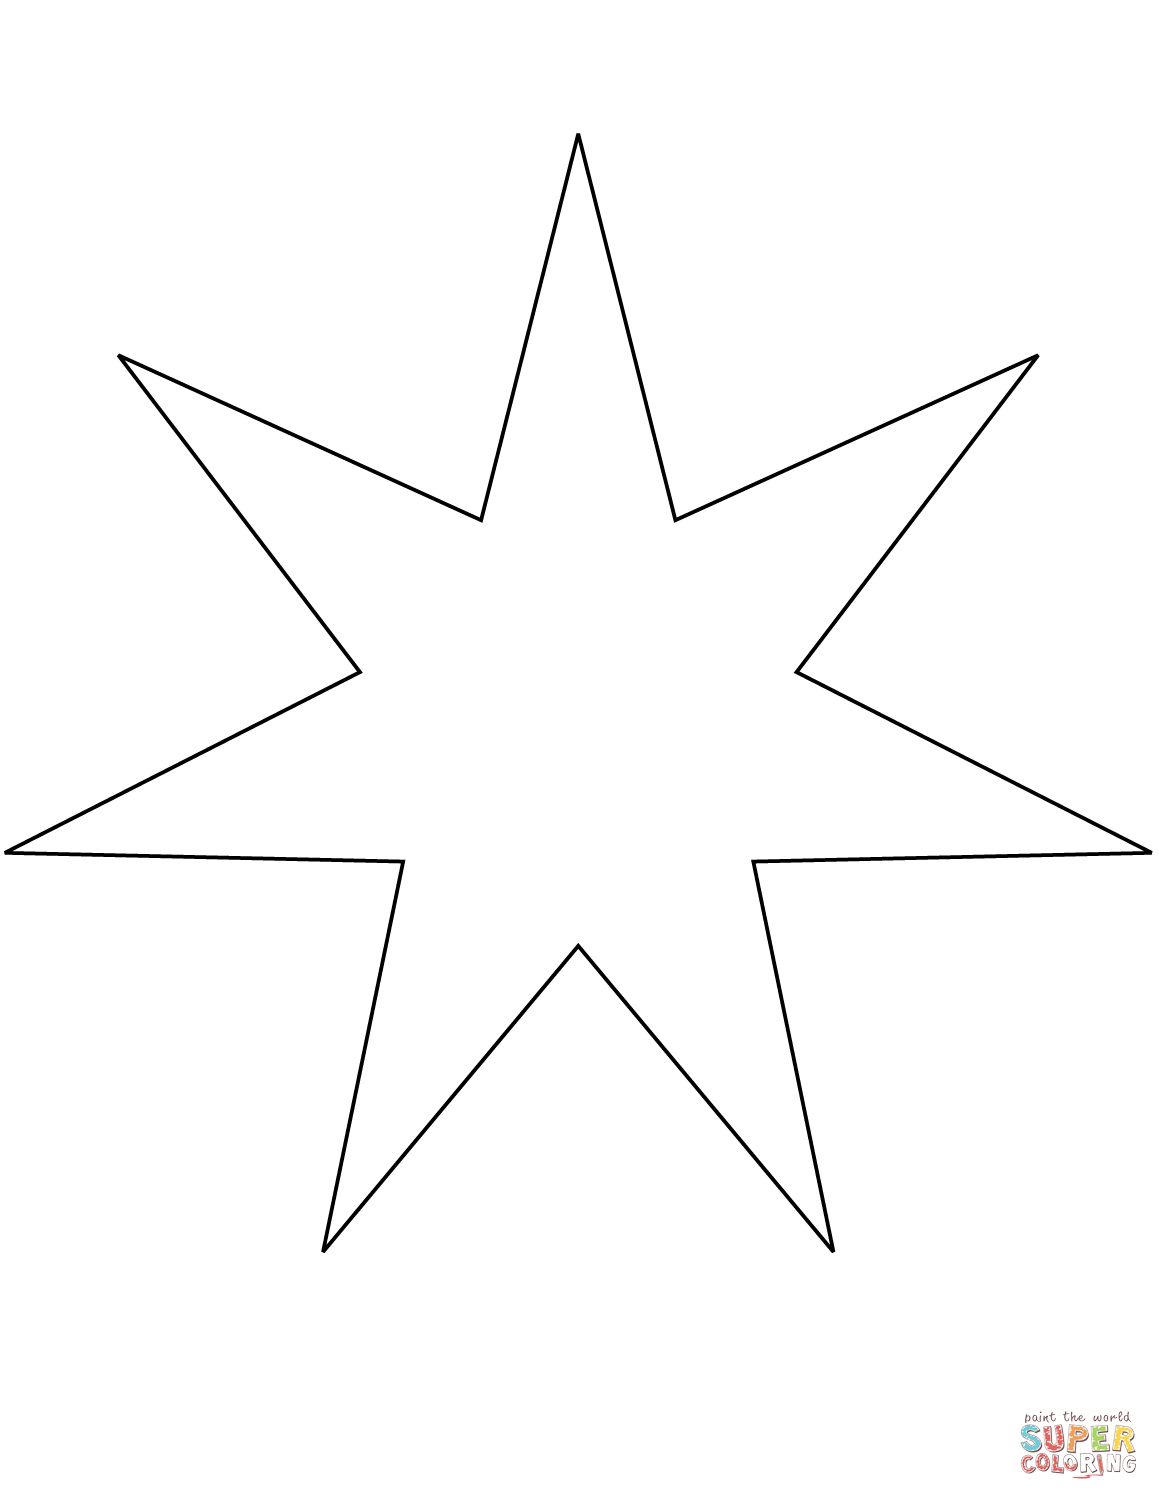 7 Points Star Coloring Page